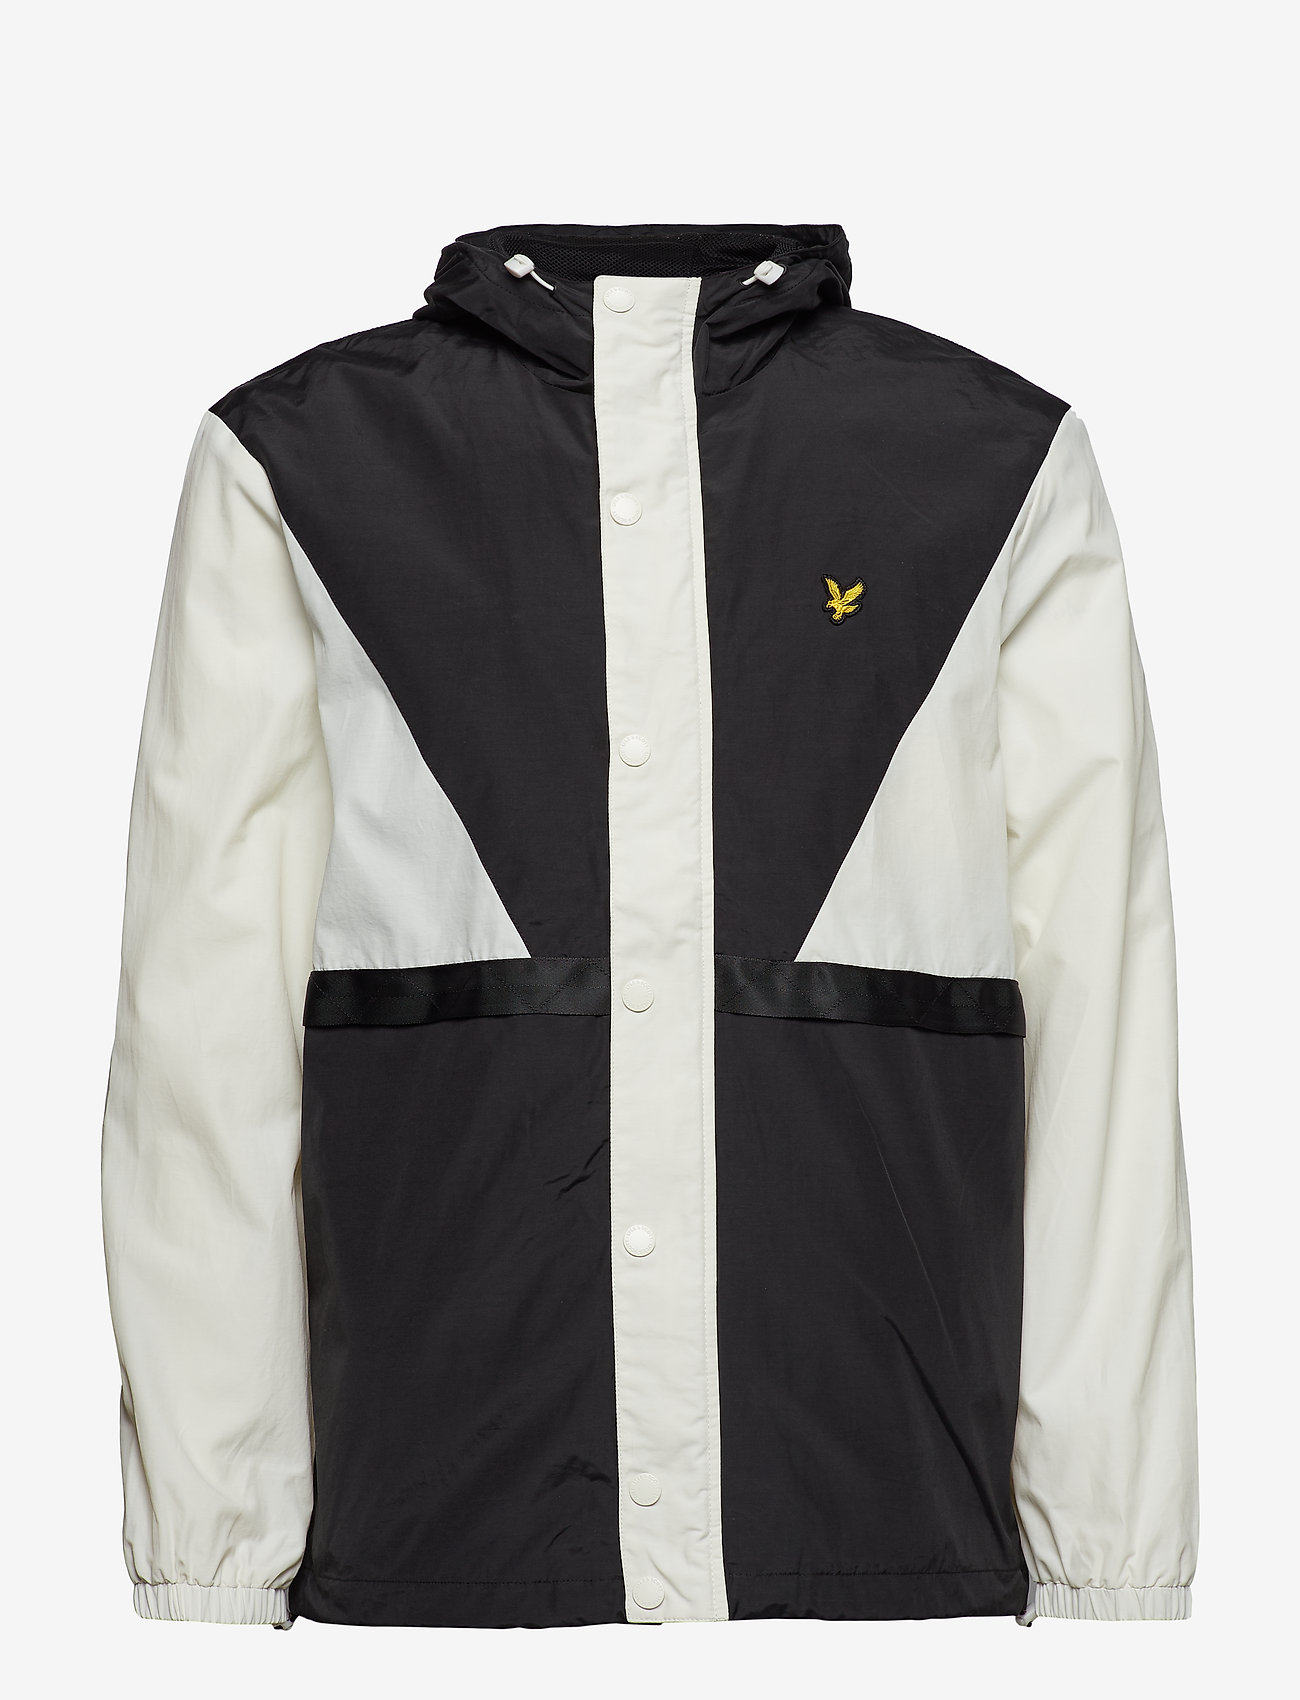 Lyle & Scott Colour Block Jacket - Vestes Et Manteaux